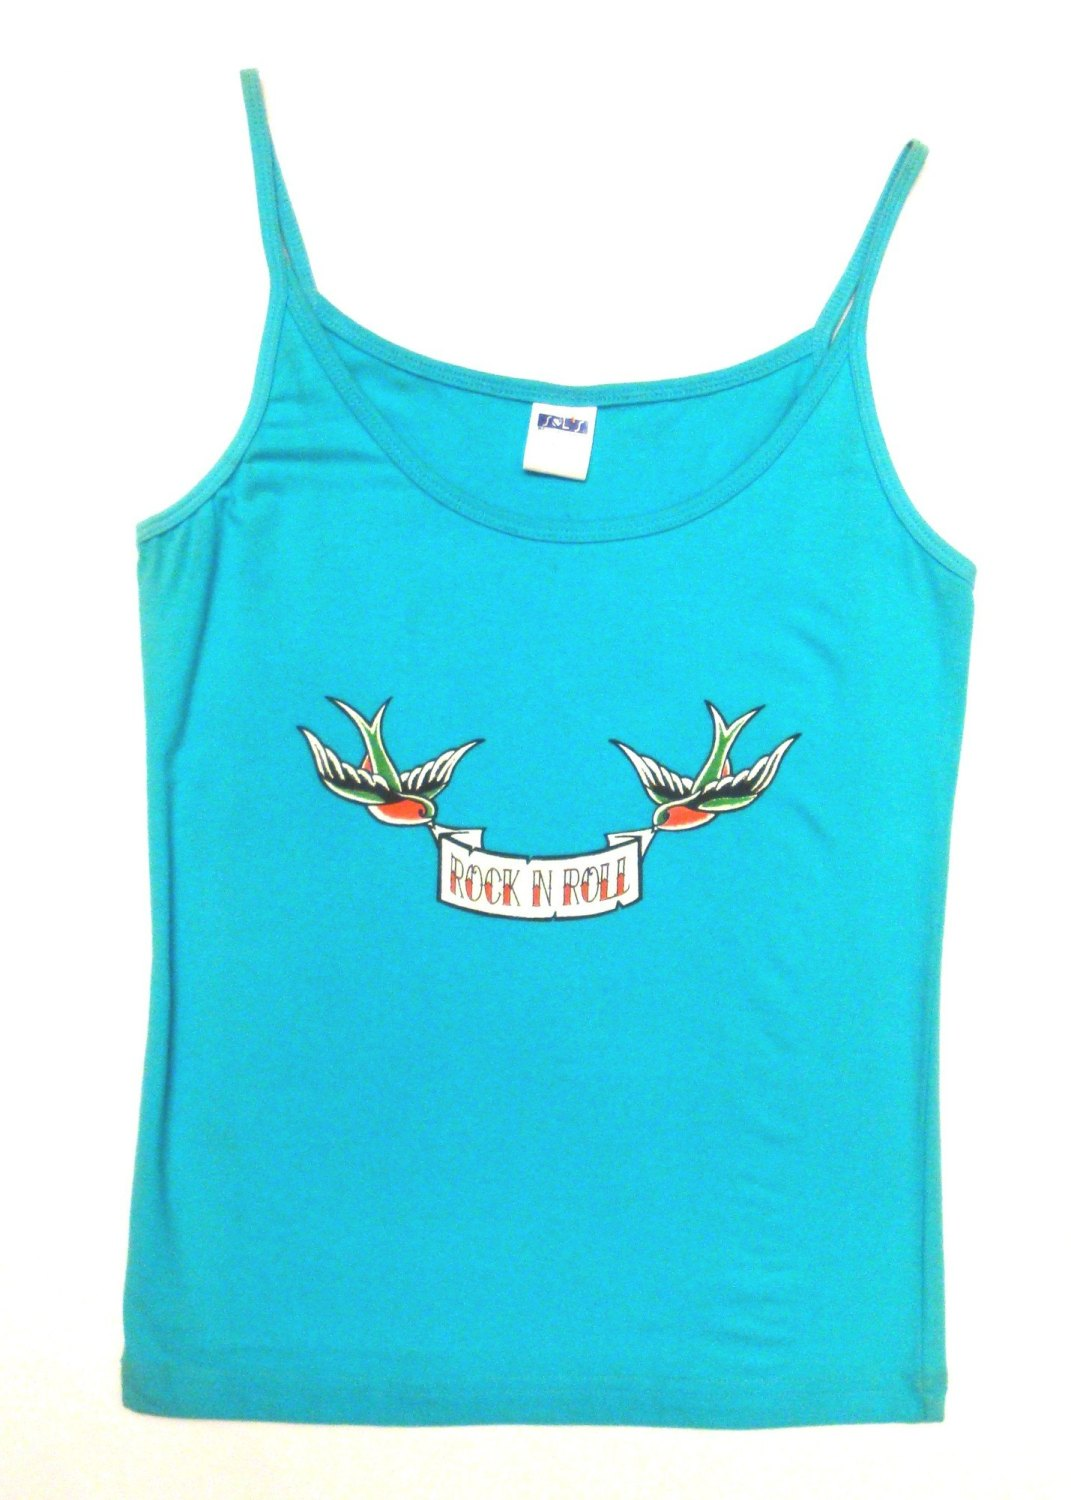 Rock N Roll Suicide Rock N Roll Swallows Turquoise Strappy Top Small